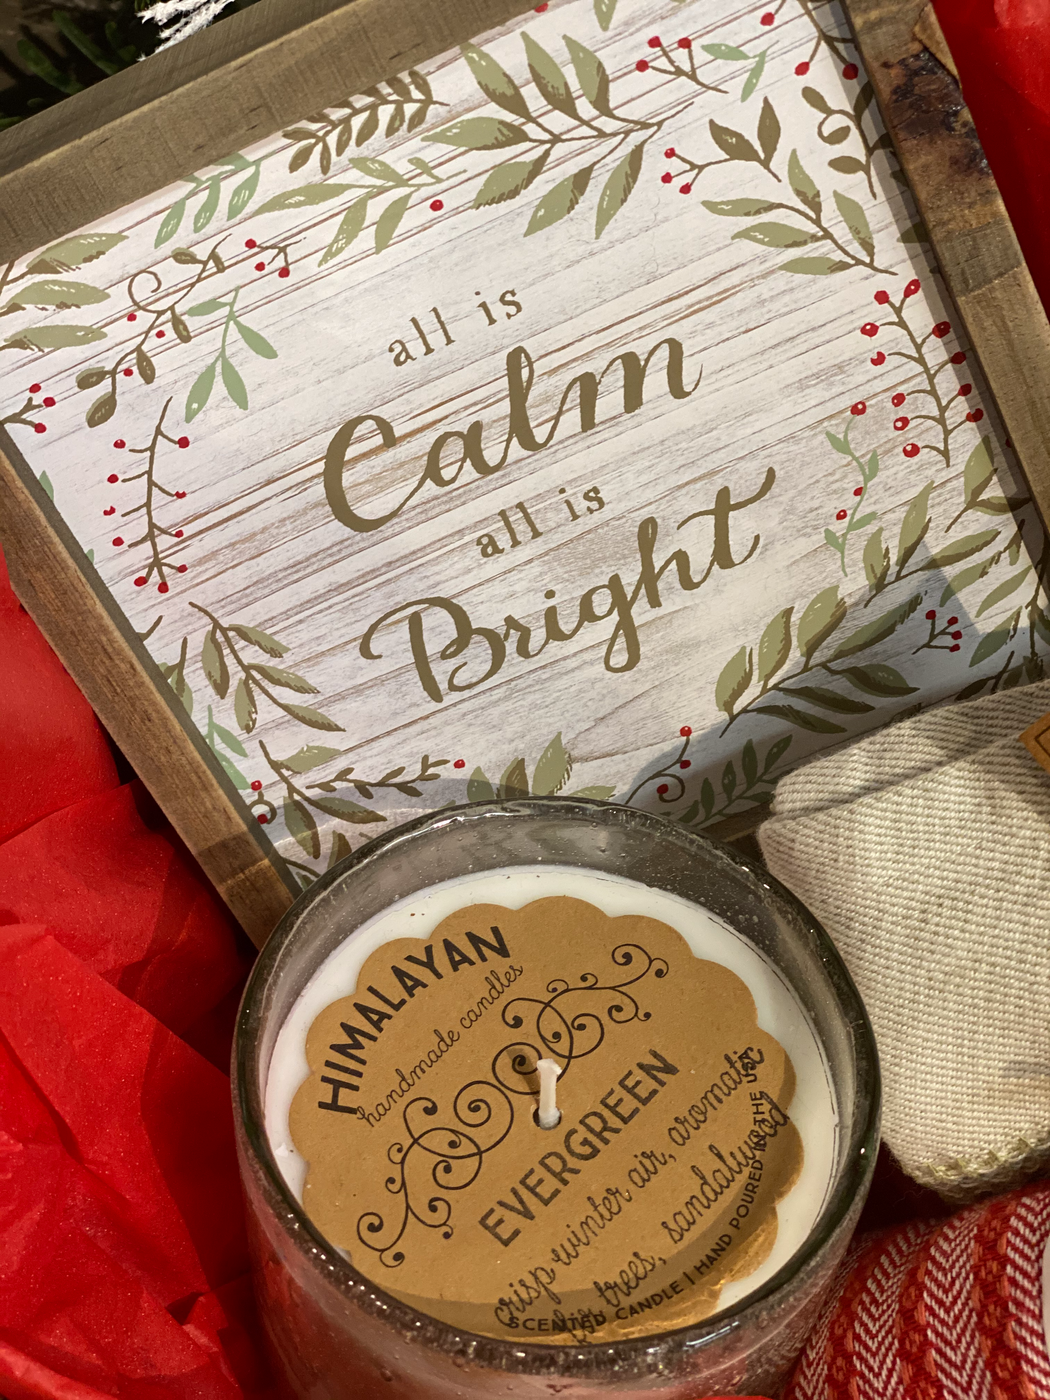 "....All is calm, all is bright... Send that nostalgic Christmas feeling to a special someone. This box contains two kitchen towels, and Evergreen candle, and a picture that whispers, ""All is Calm all is Bright""."